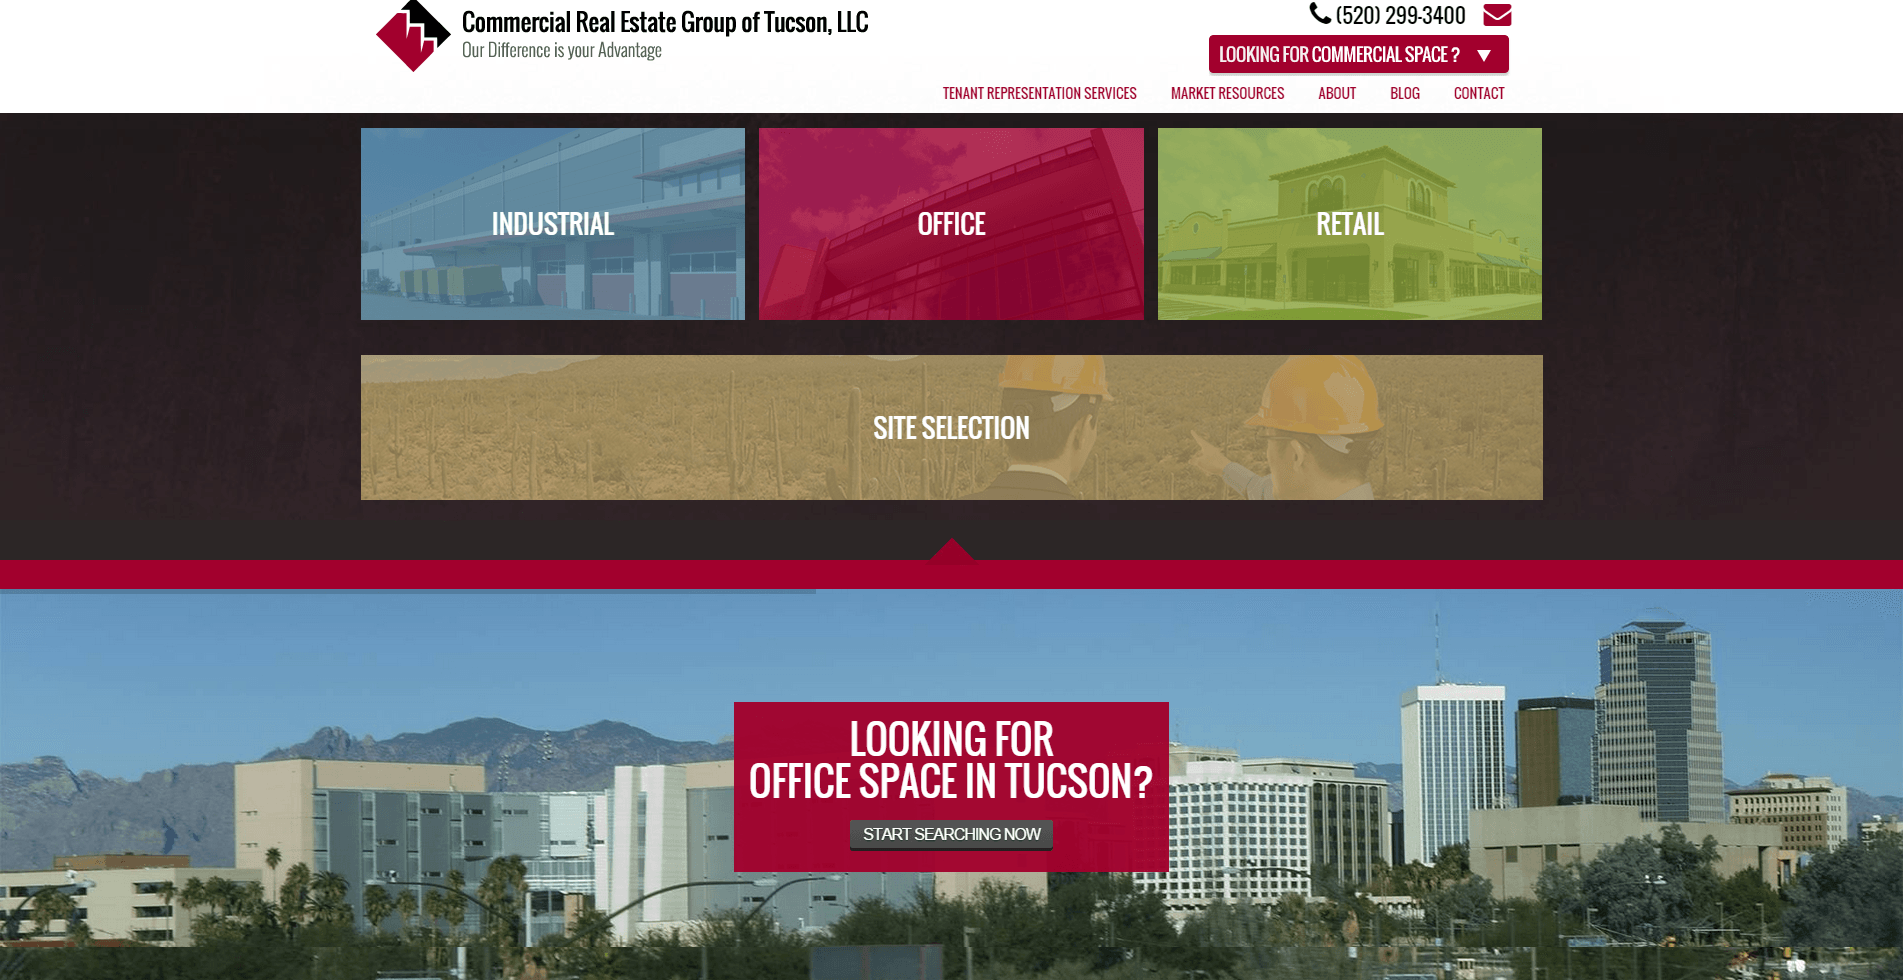 2015 Wordpress Design Portfolio Commercial Real Estate Group of Tucson  LLC Markets